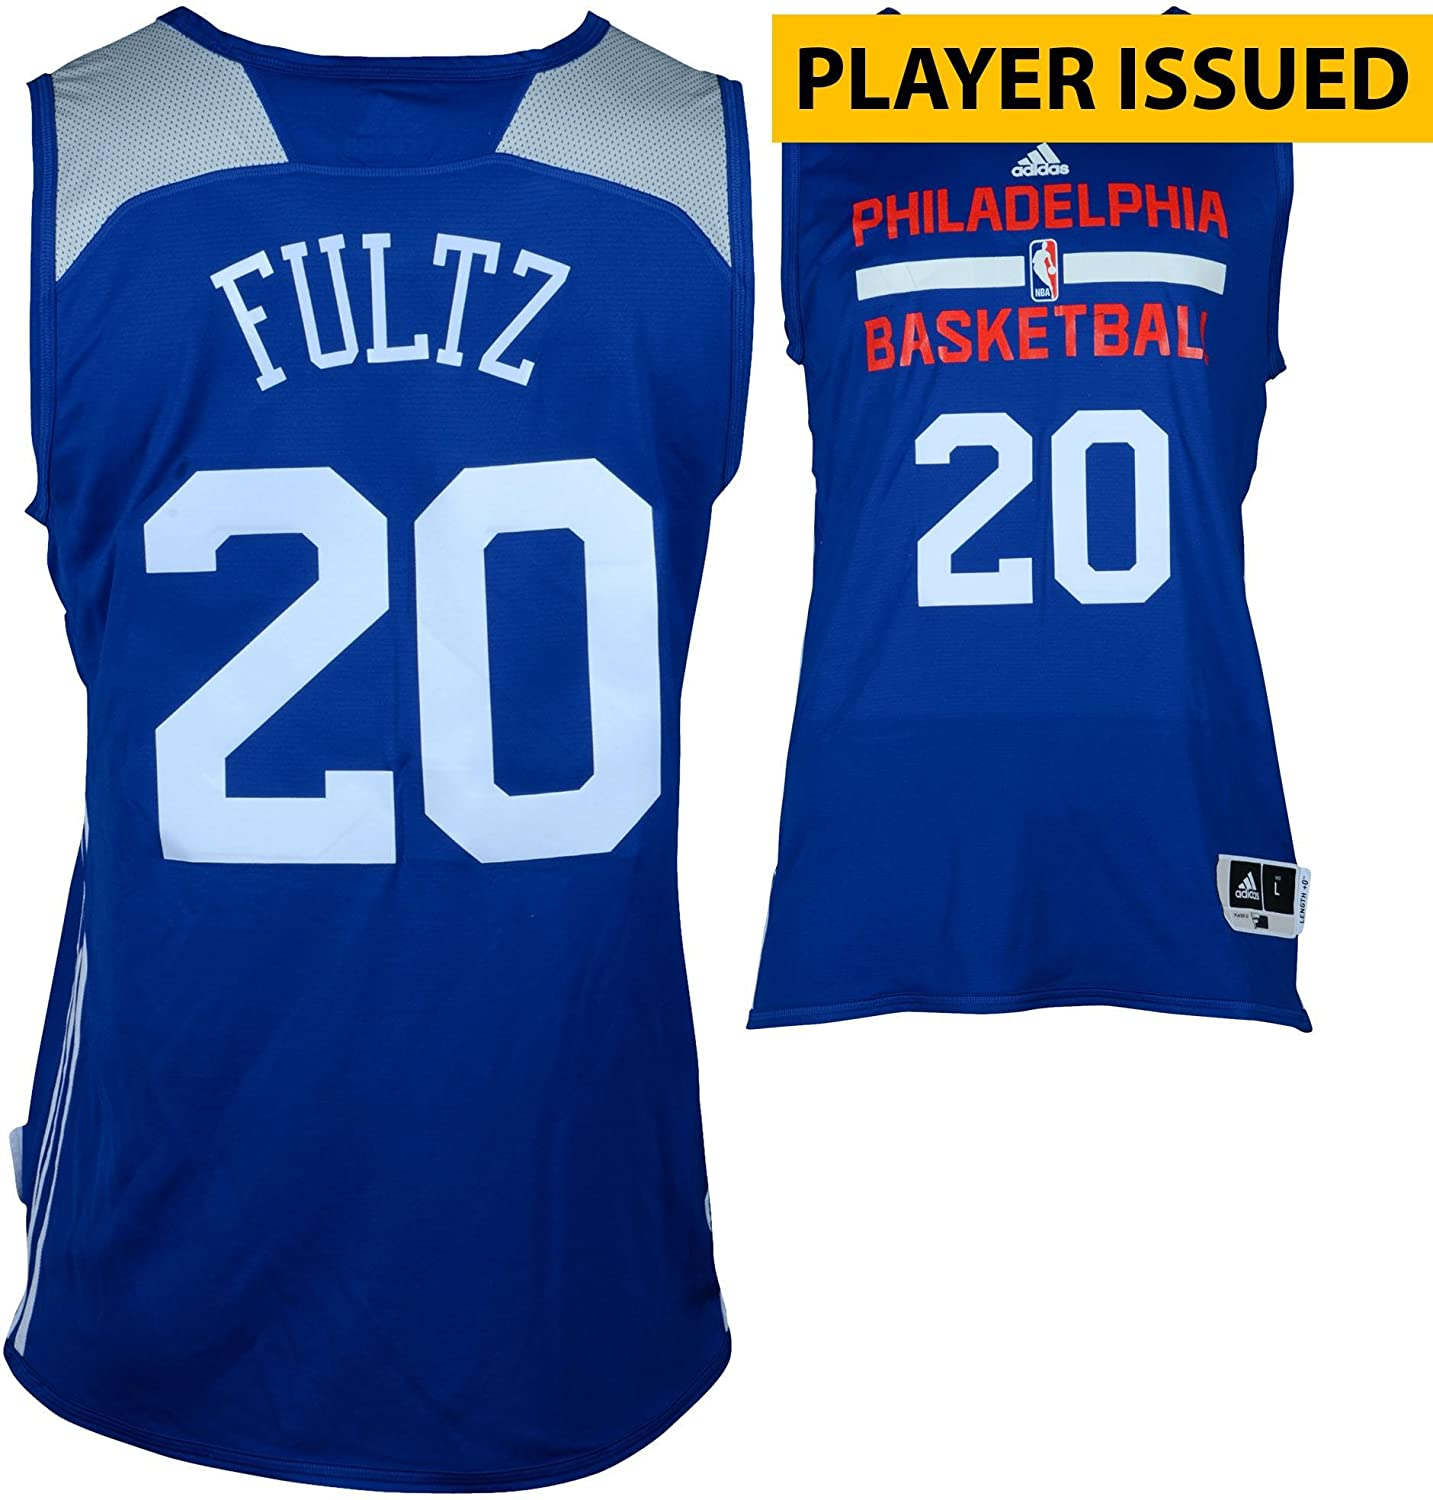 c8f43a7f105 Markelle Fultz Philadelphia 76ers Player-Issued  20 Reversible Jersey from  the 2017 NBA Summer League - Size L - Fanatics Authentic Certified at  Amazon s ...